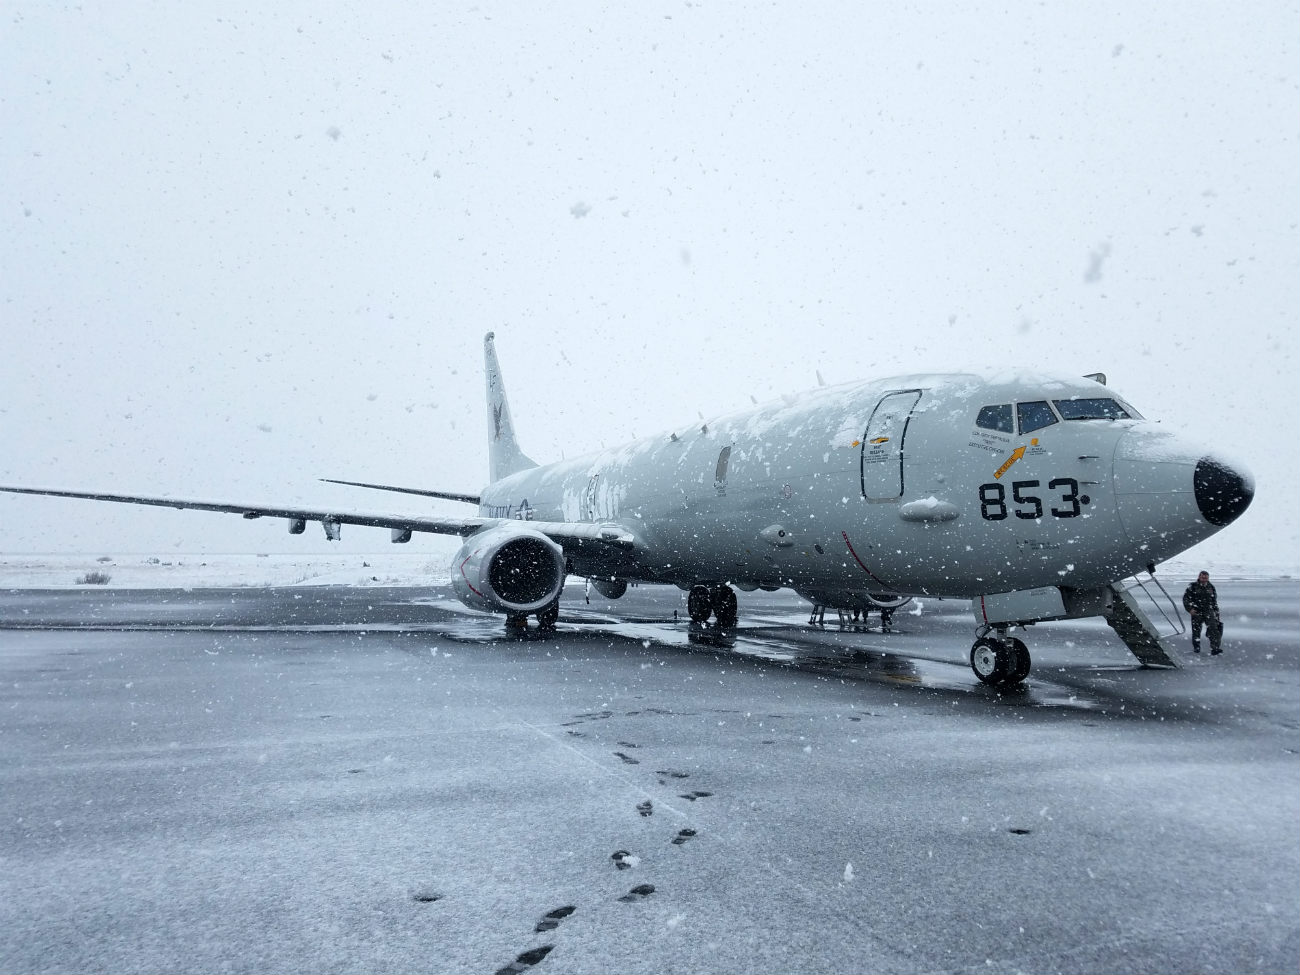 Boeing Military Aircraft Images - P-8 Poseidon